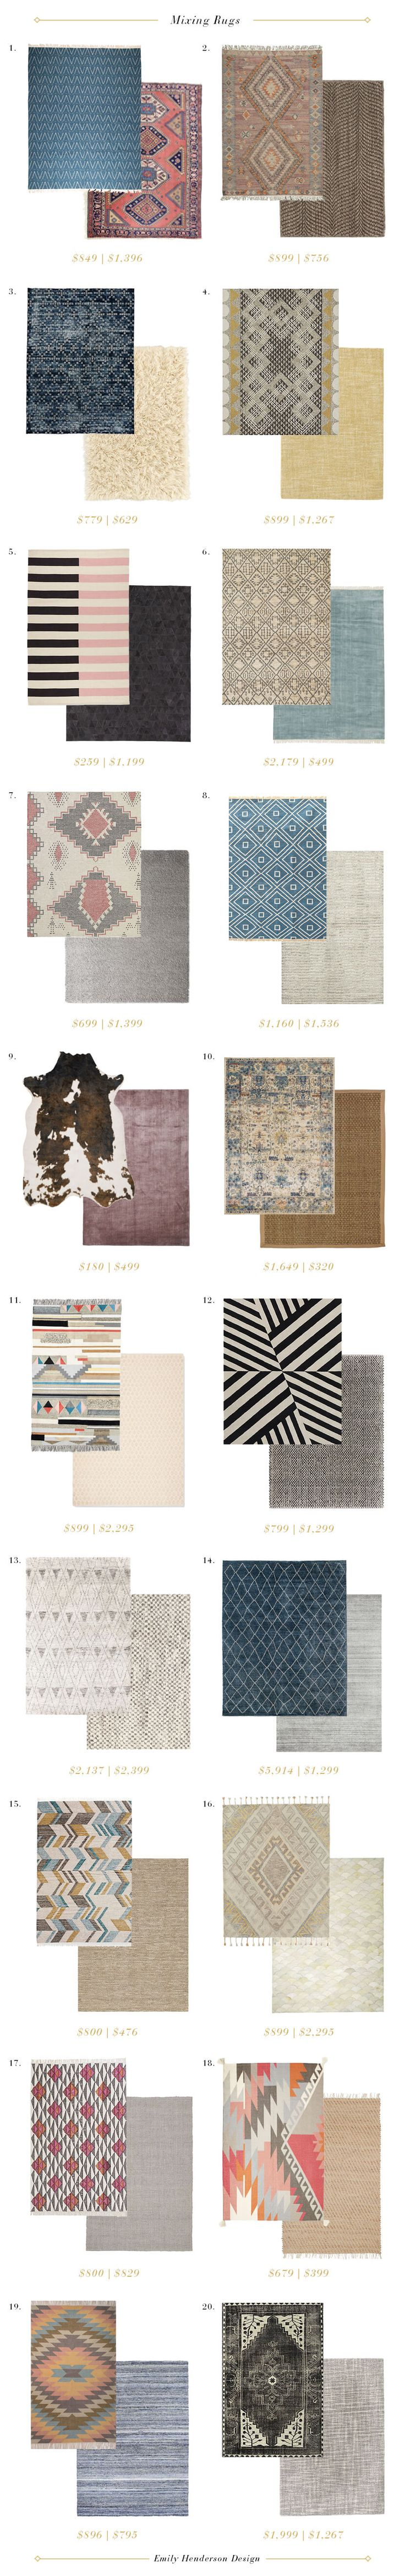 How to Mix Multiple Rugs In The Same Room | www.Homeology.co.za